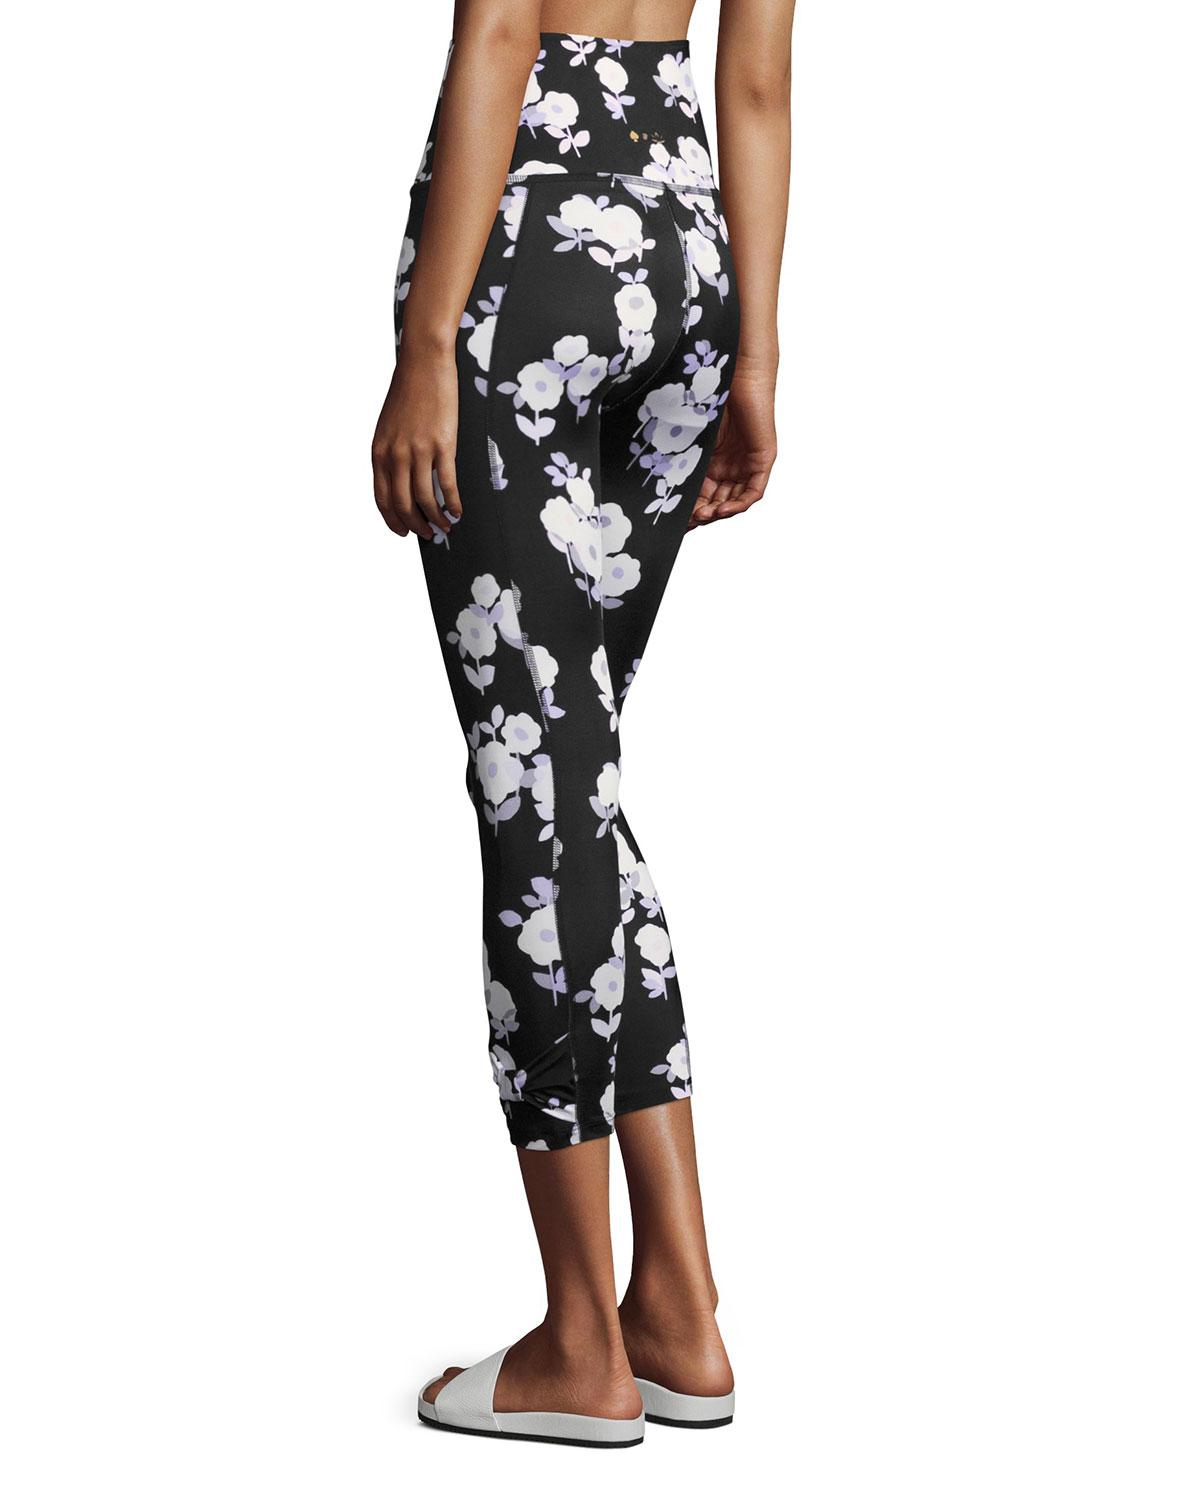 Beyond Yoga Synthetic X Kate Spade New York Luxe Floral